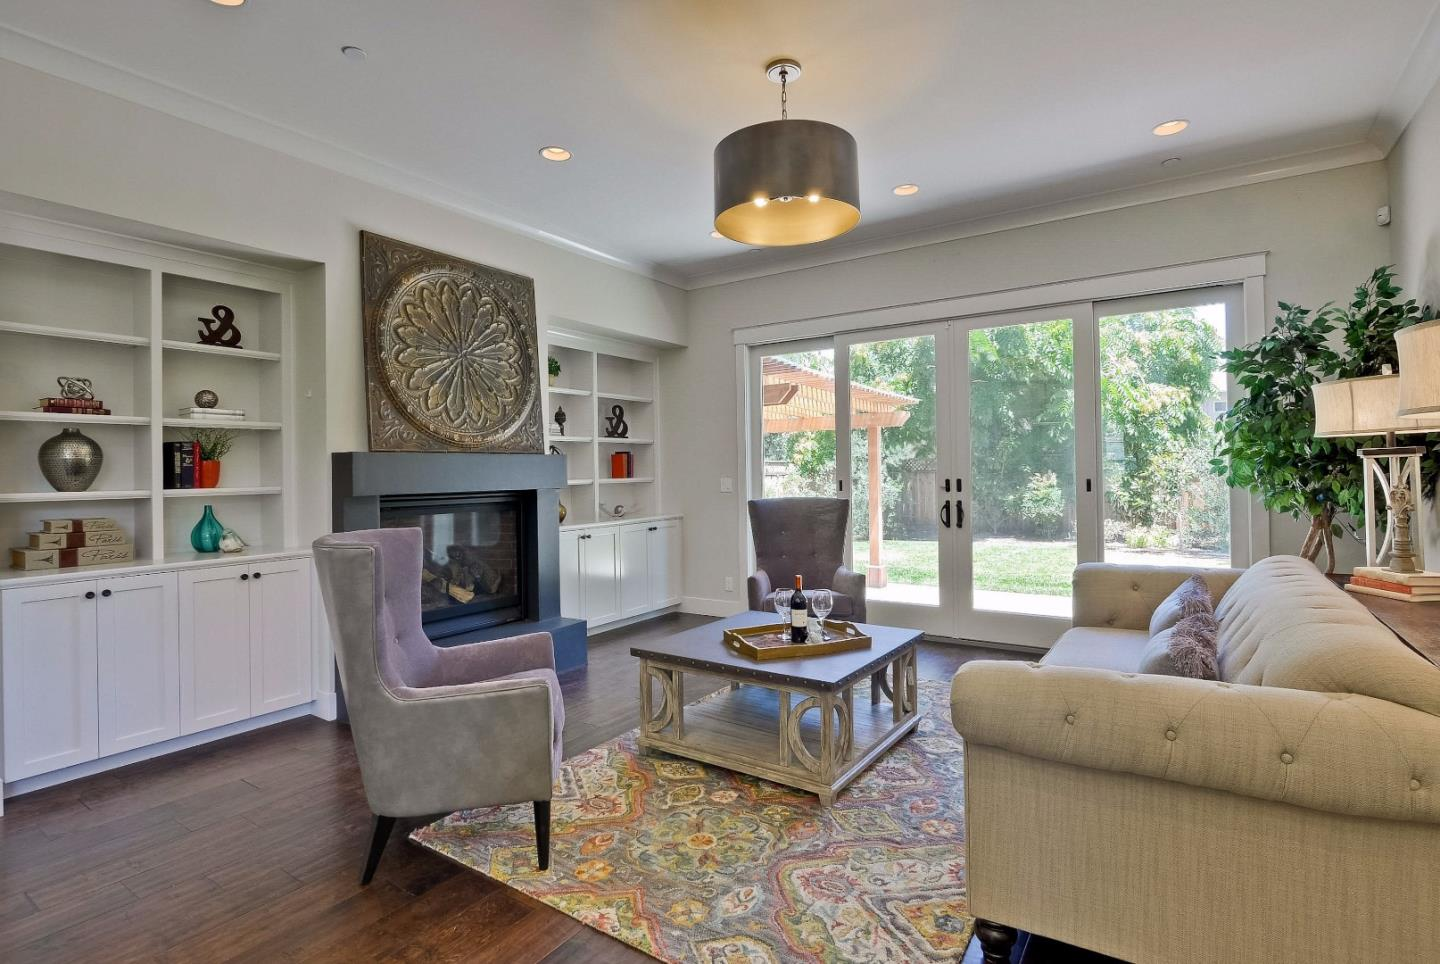 722 Sonia Way, Mountain View, CA 94040